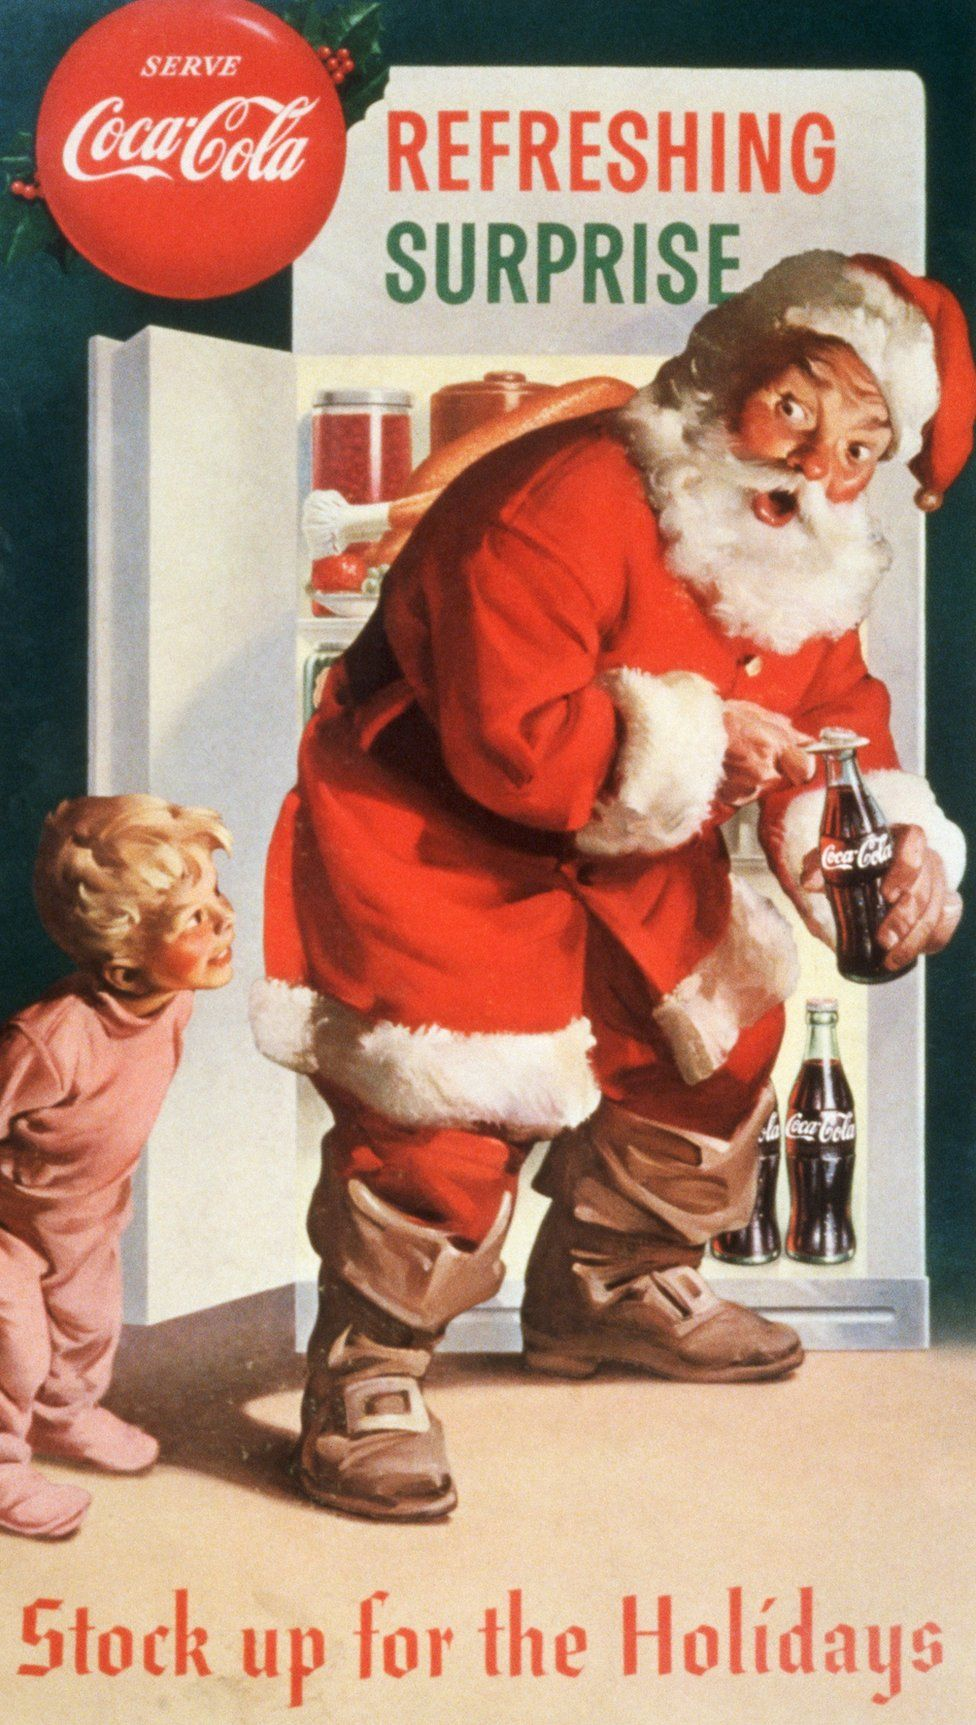 An advertising poster by Haddon Sundblom showing a young boy surprising Santa Claus helping himself to a bottle of Coke